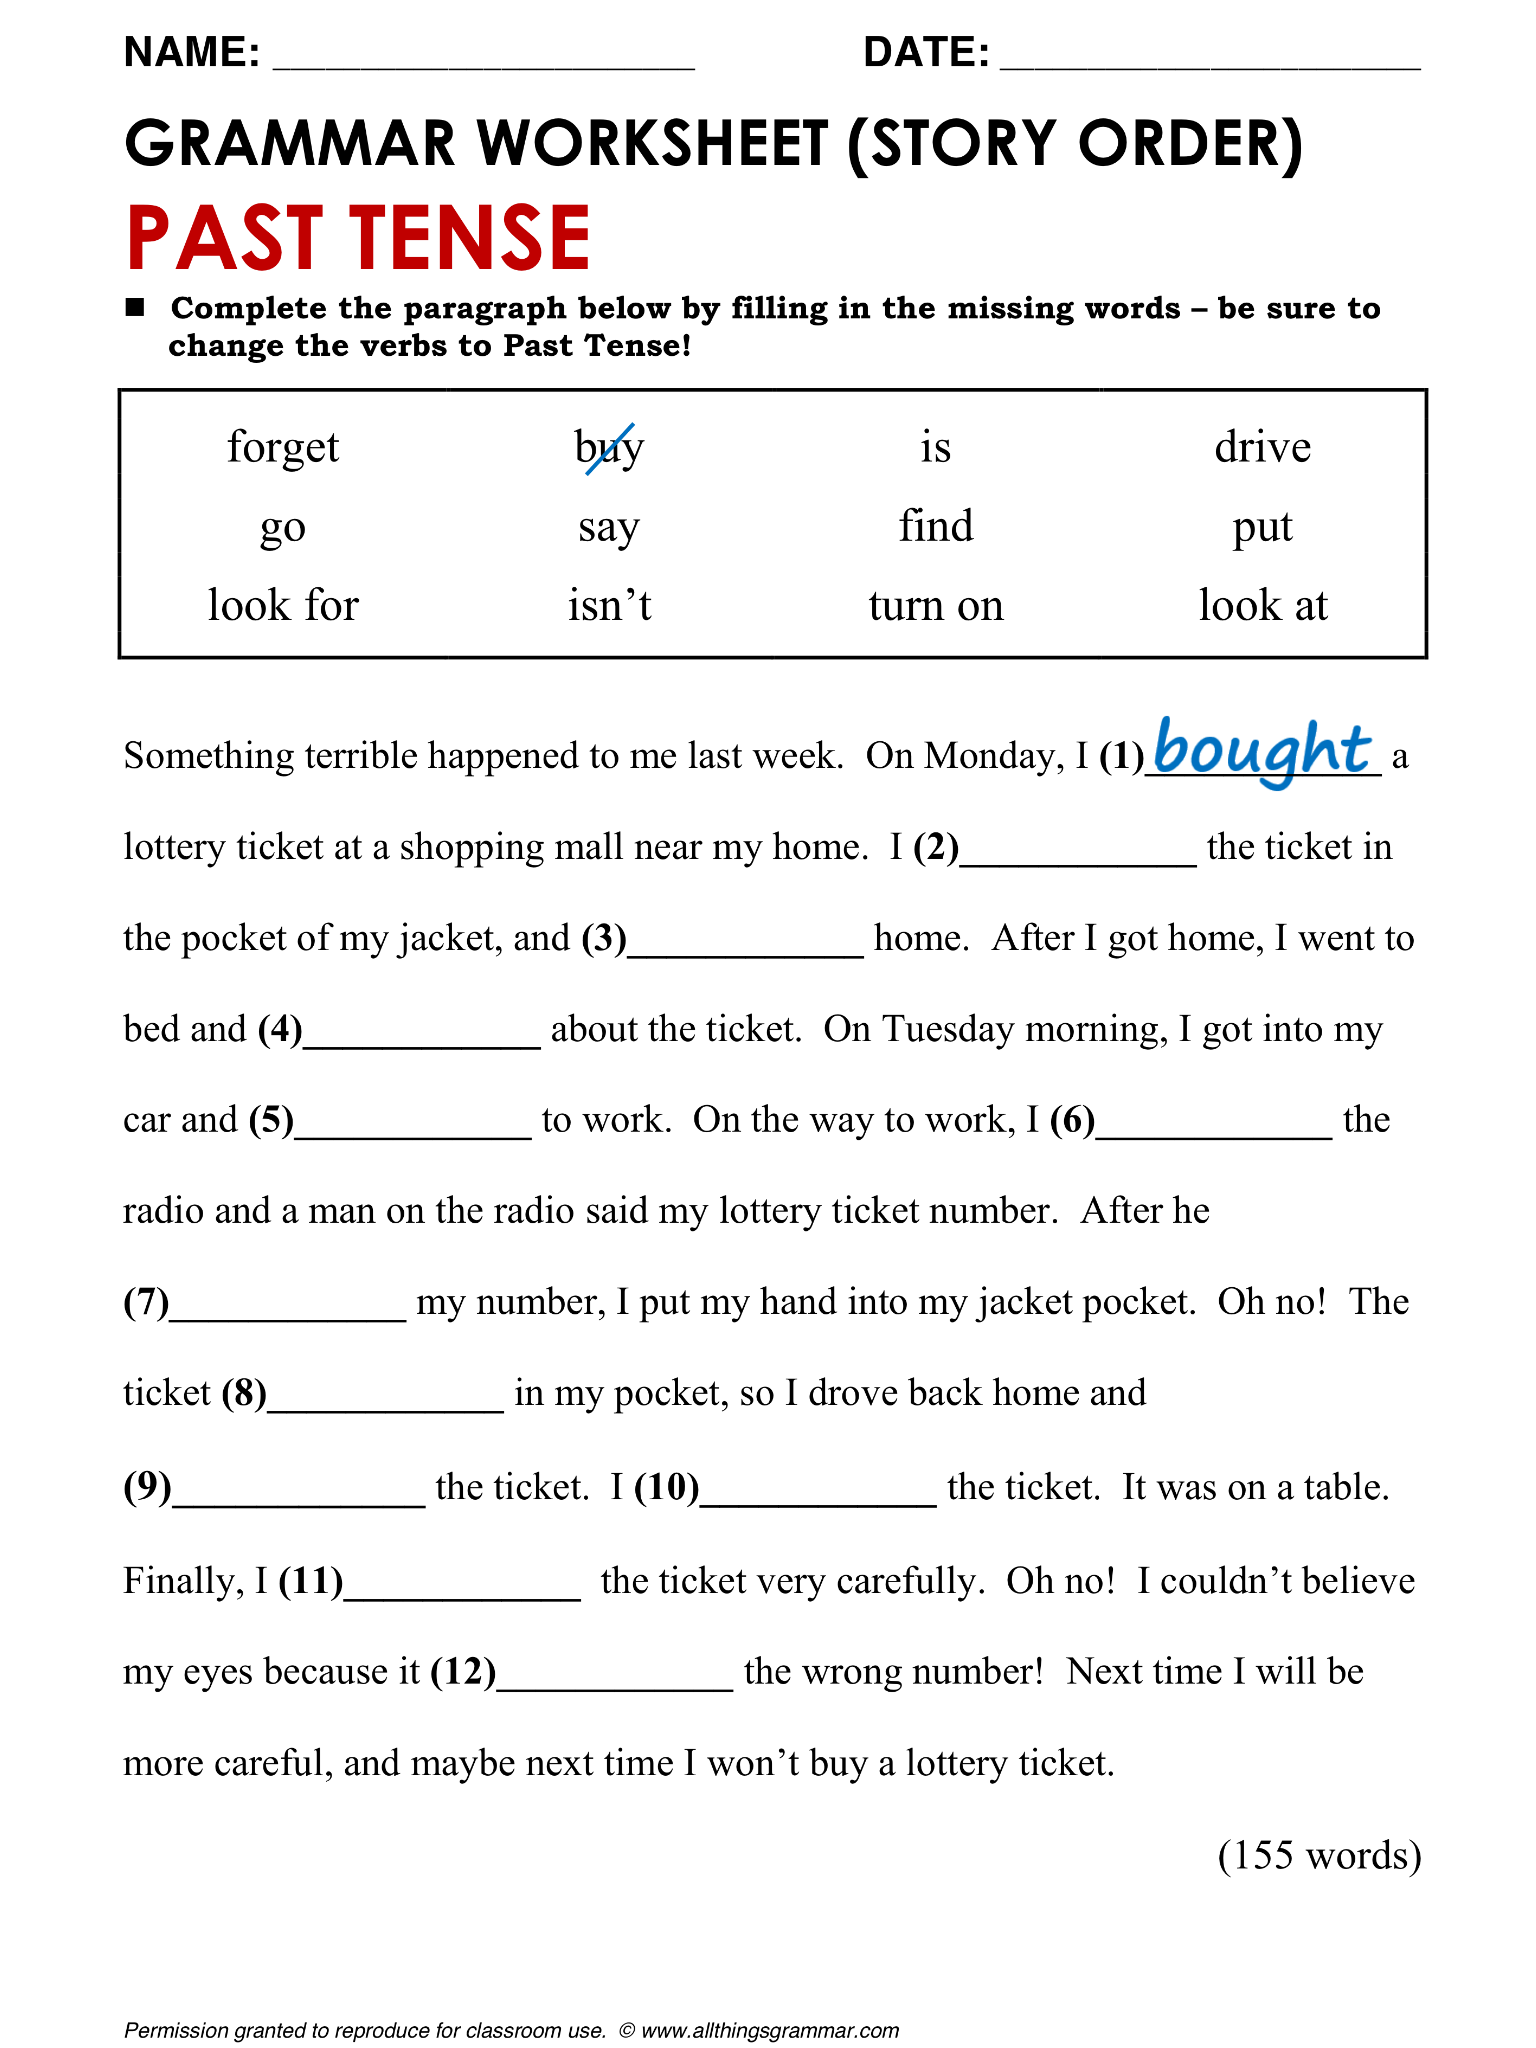 irregular verbs worksheet 4th grade free verbs worksheet for year 2 brainscommon irregular. Black Bedroom Furniture Sets. Home Design Ideas